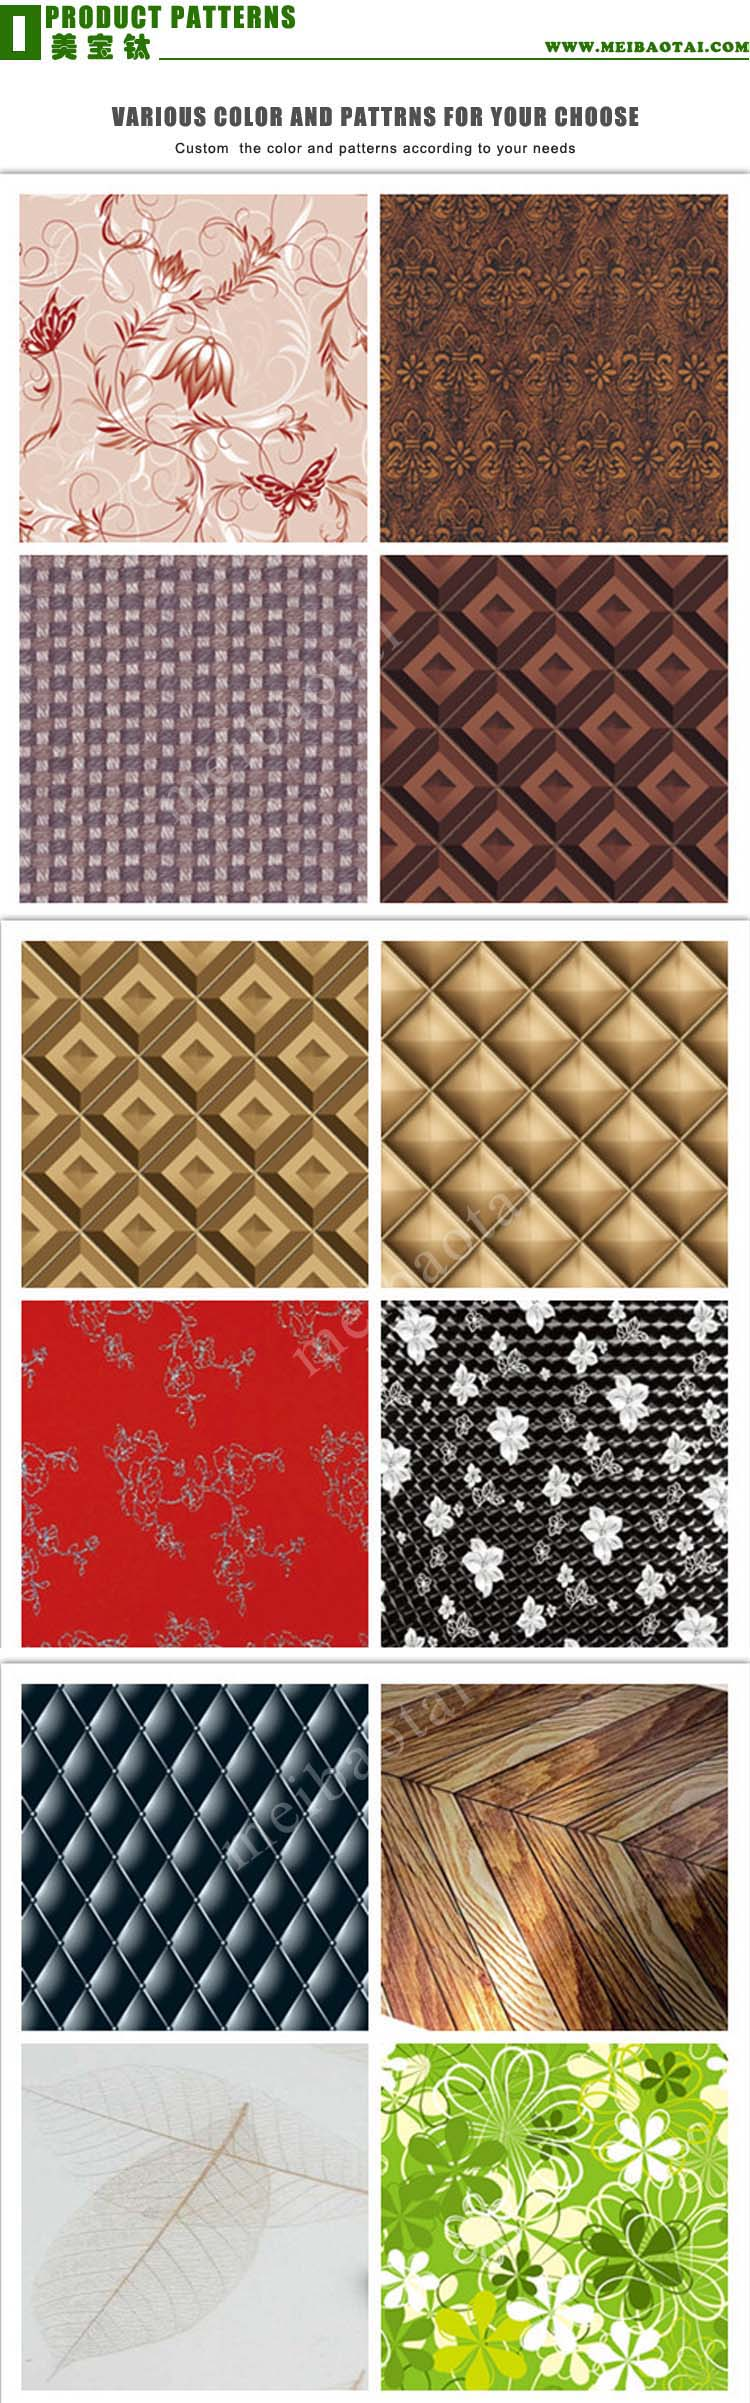 laminated_products_patterns